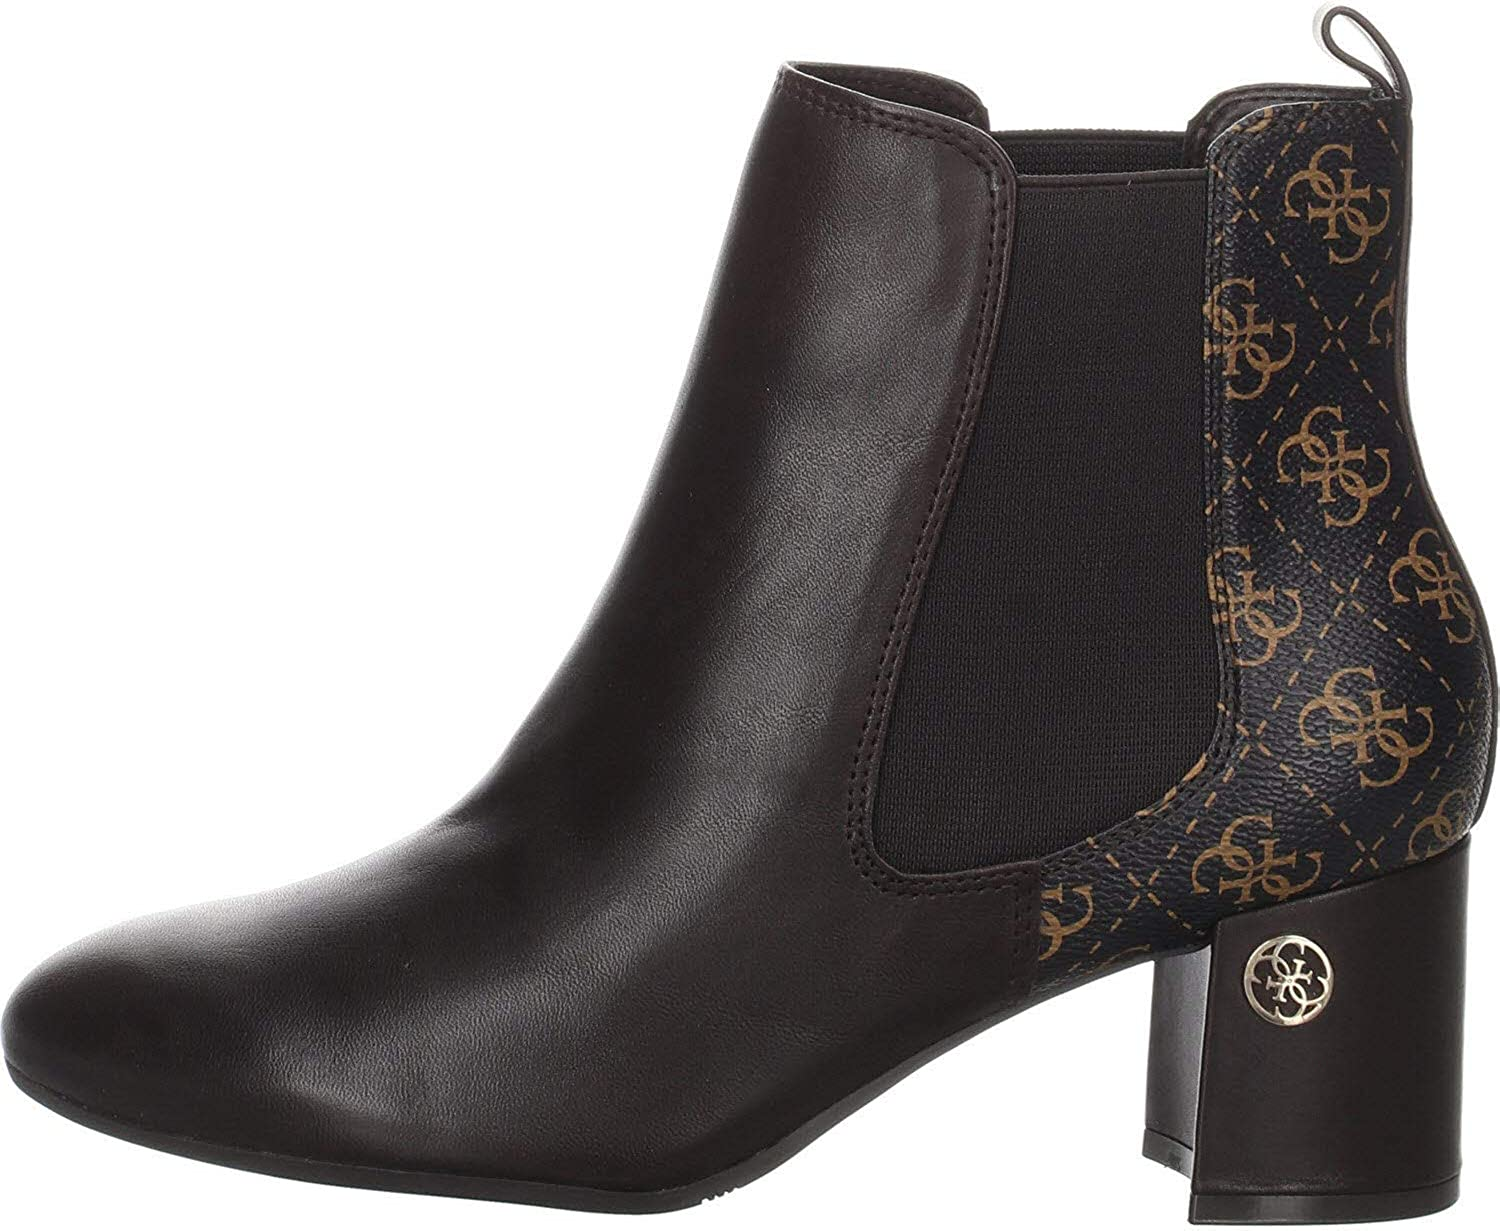 Guess Acurn/Stivaletto (Bootie)/Leat, Botines para Mujer